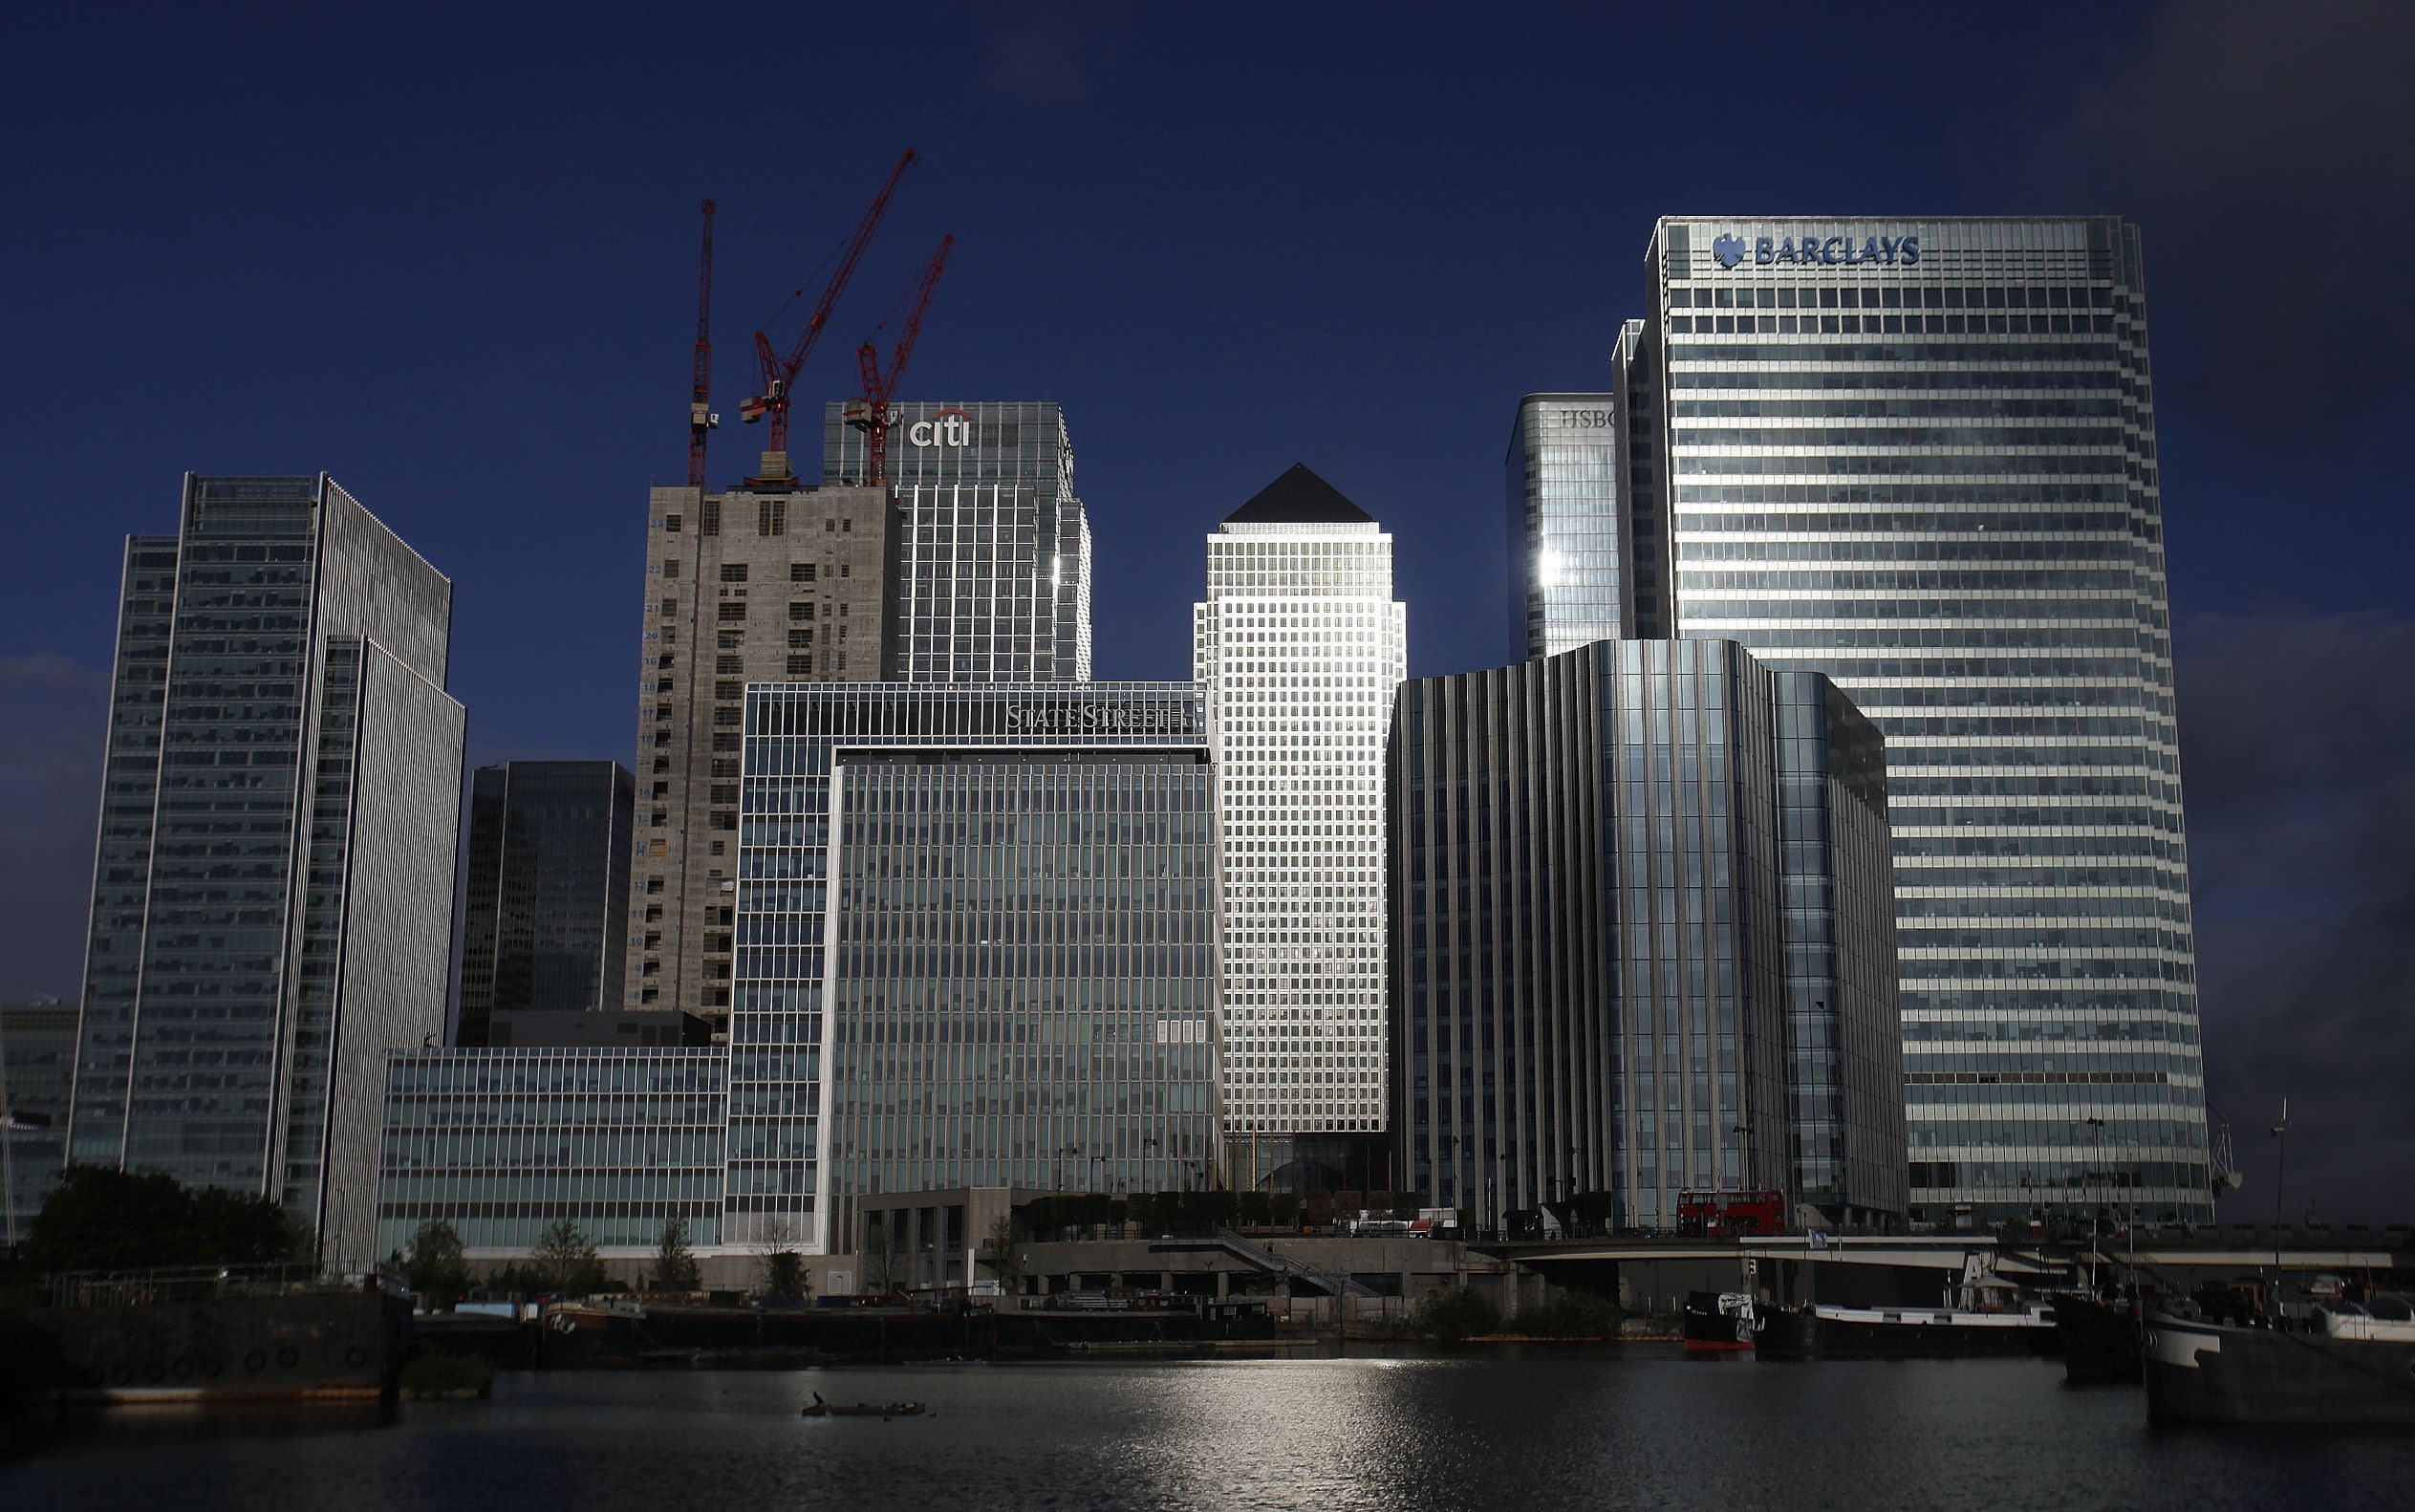 What will replace Libor?